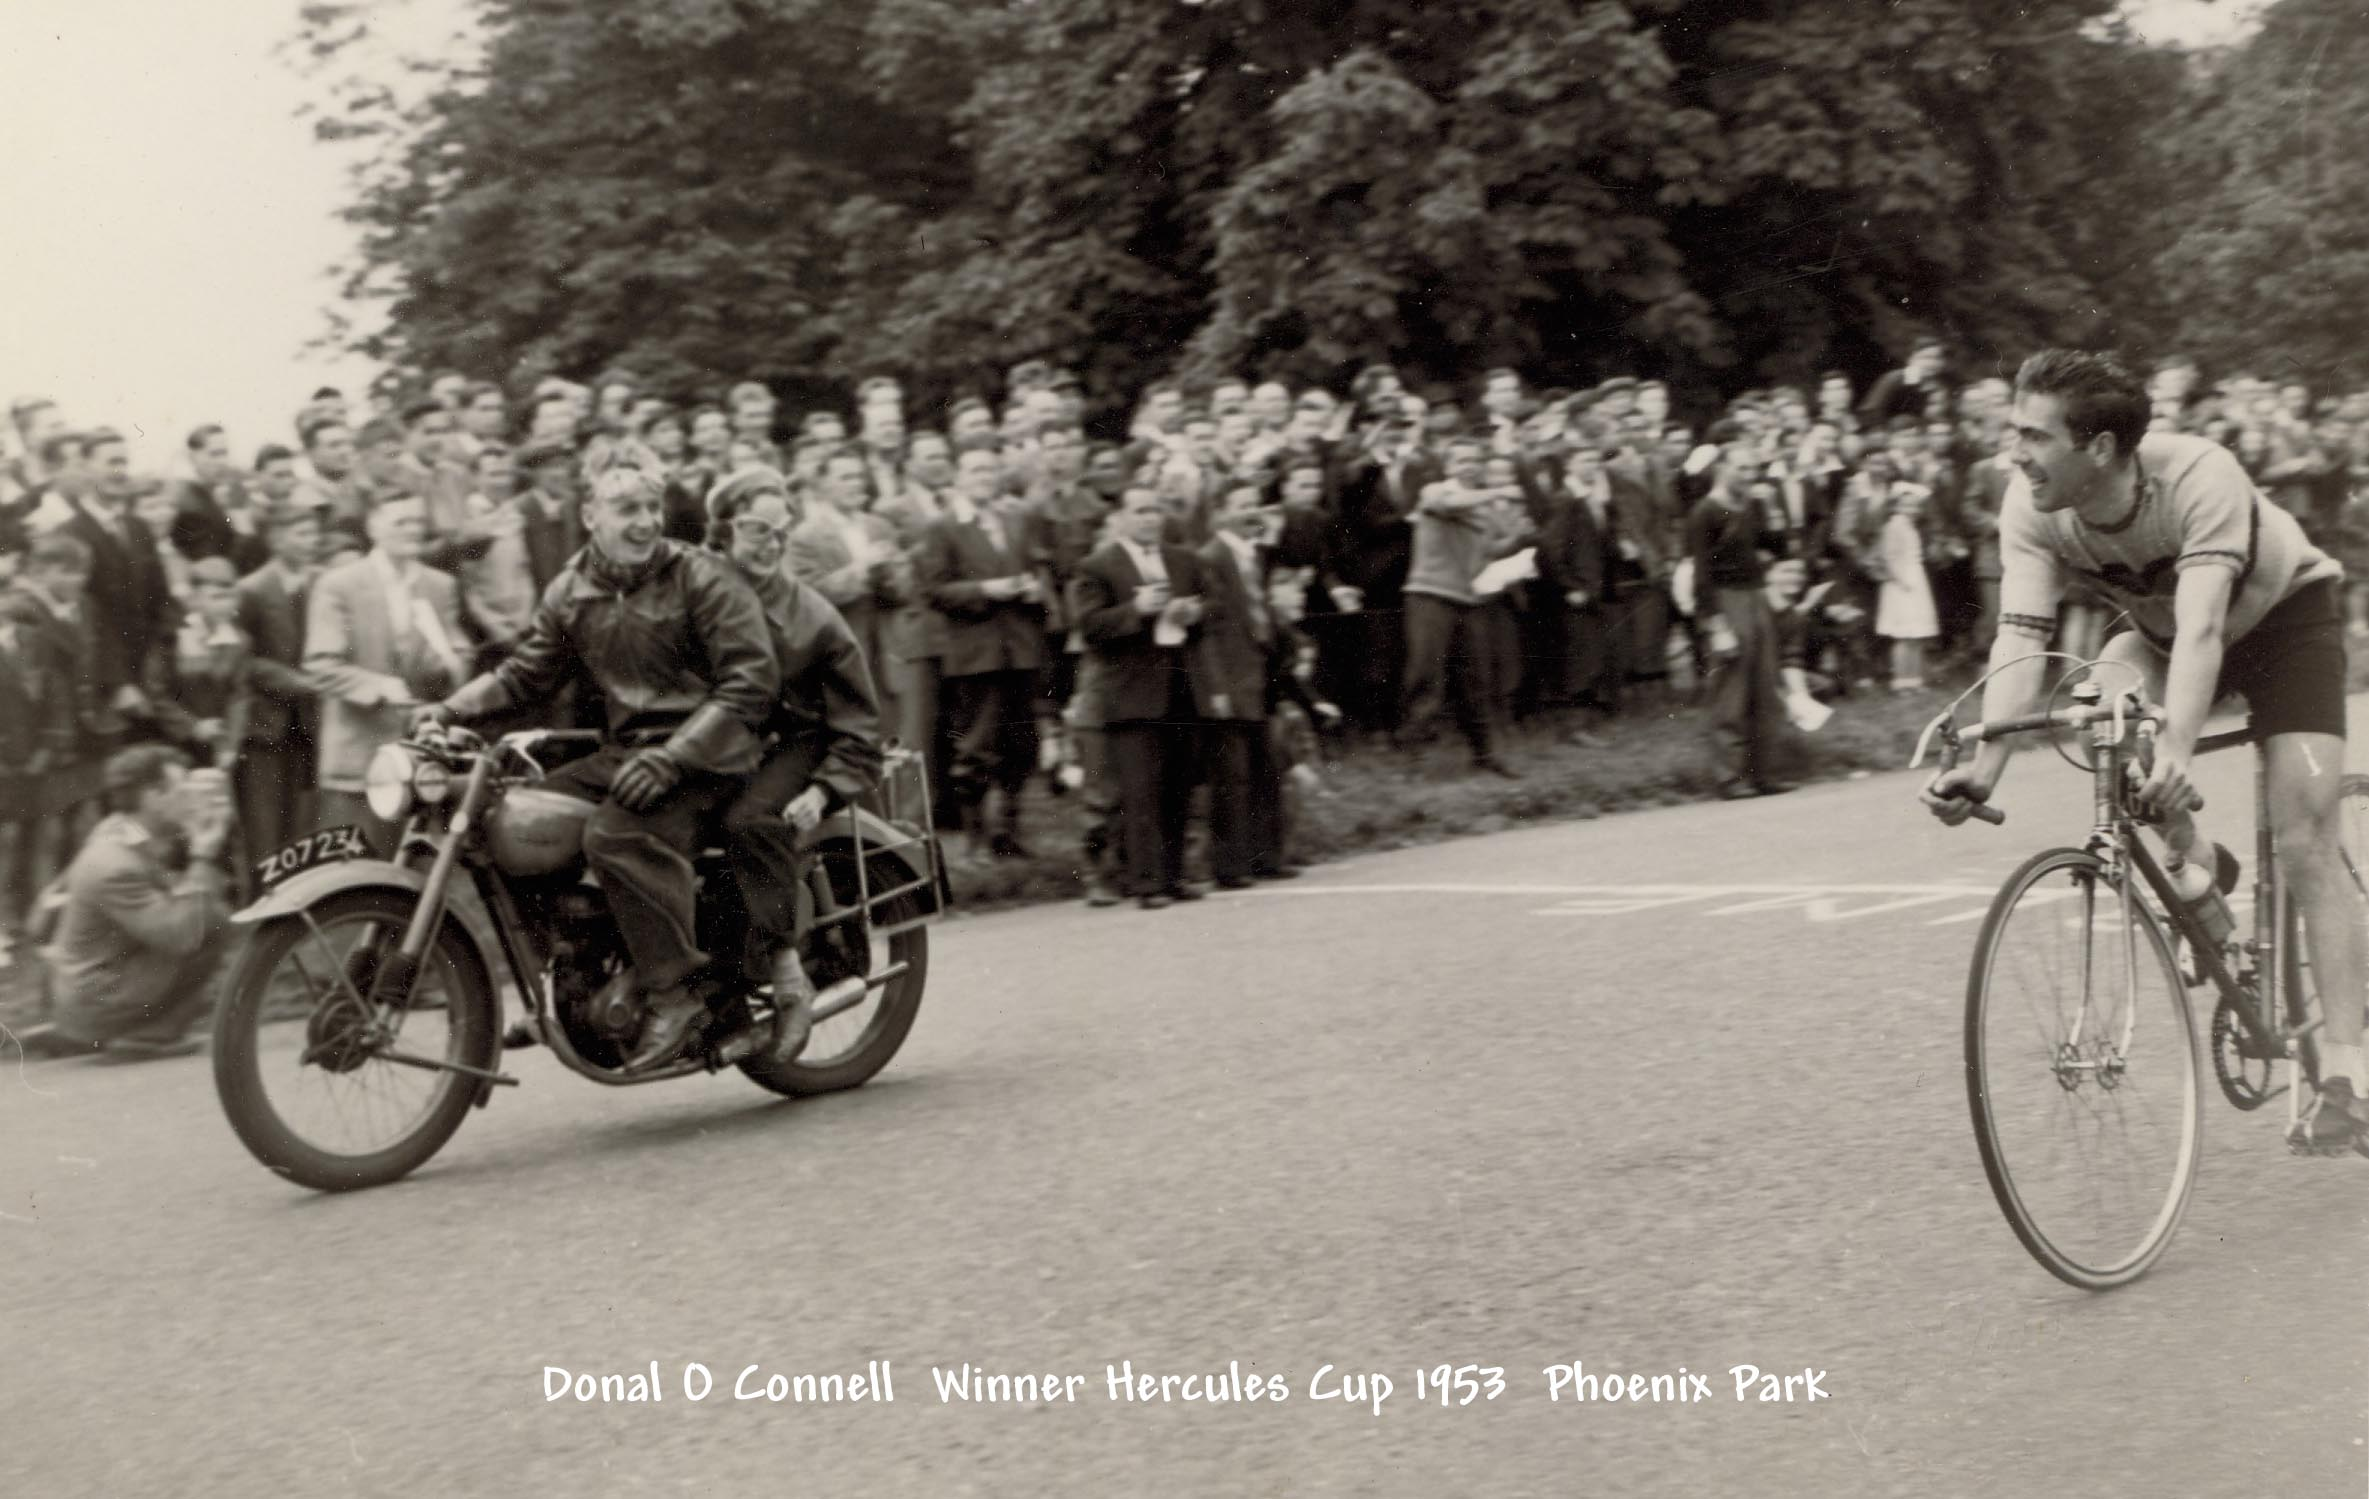 Donal O'Connell Hercules Cup 1953